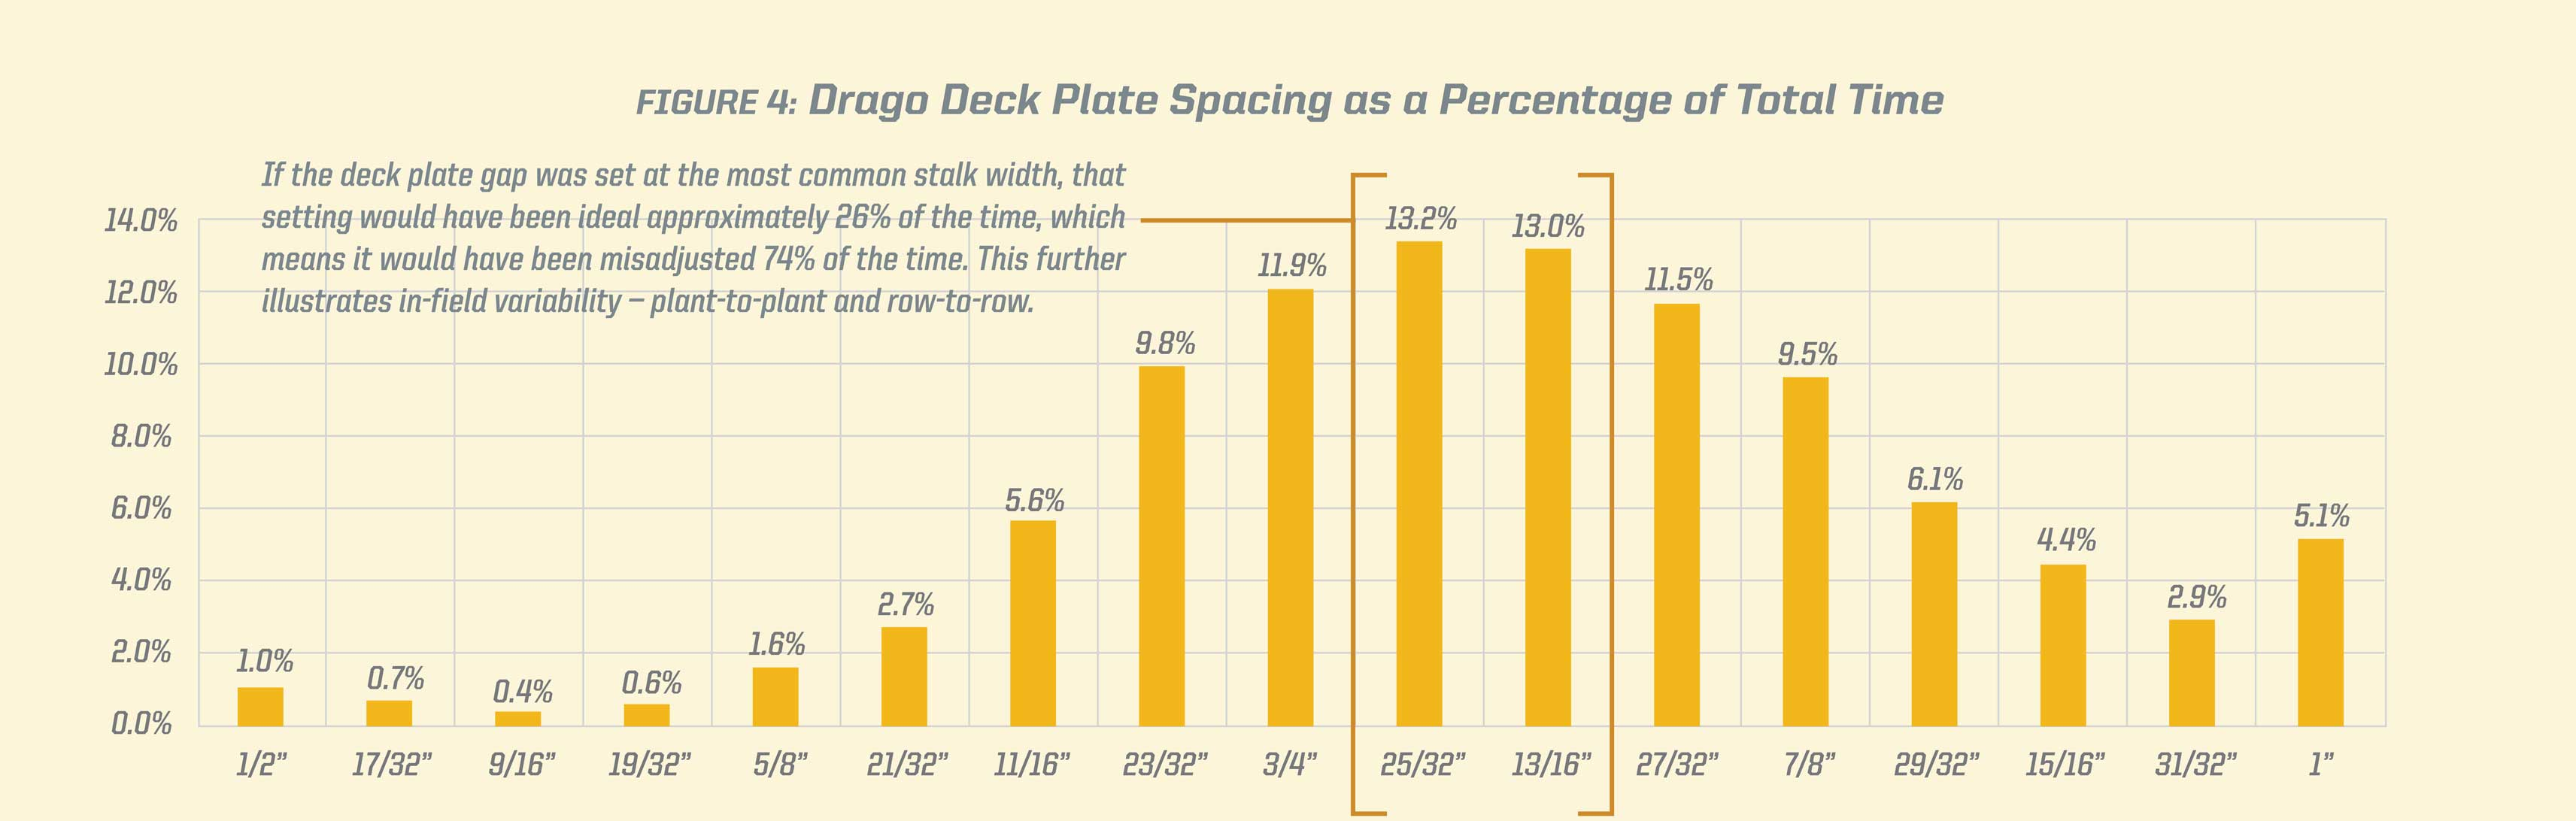 """Drago deck plate gap spacing measurements were also tracked in the field study and shown in 1/32"""" increments."""